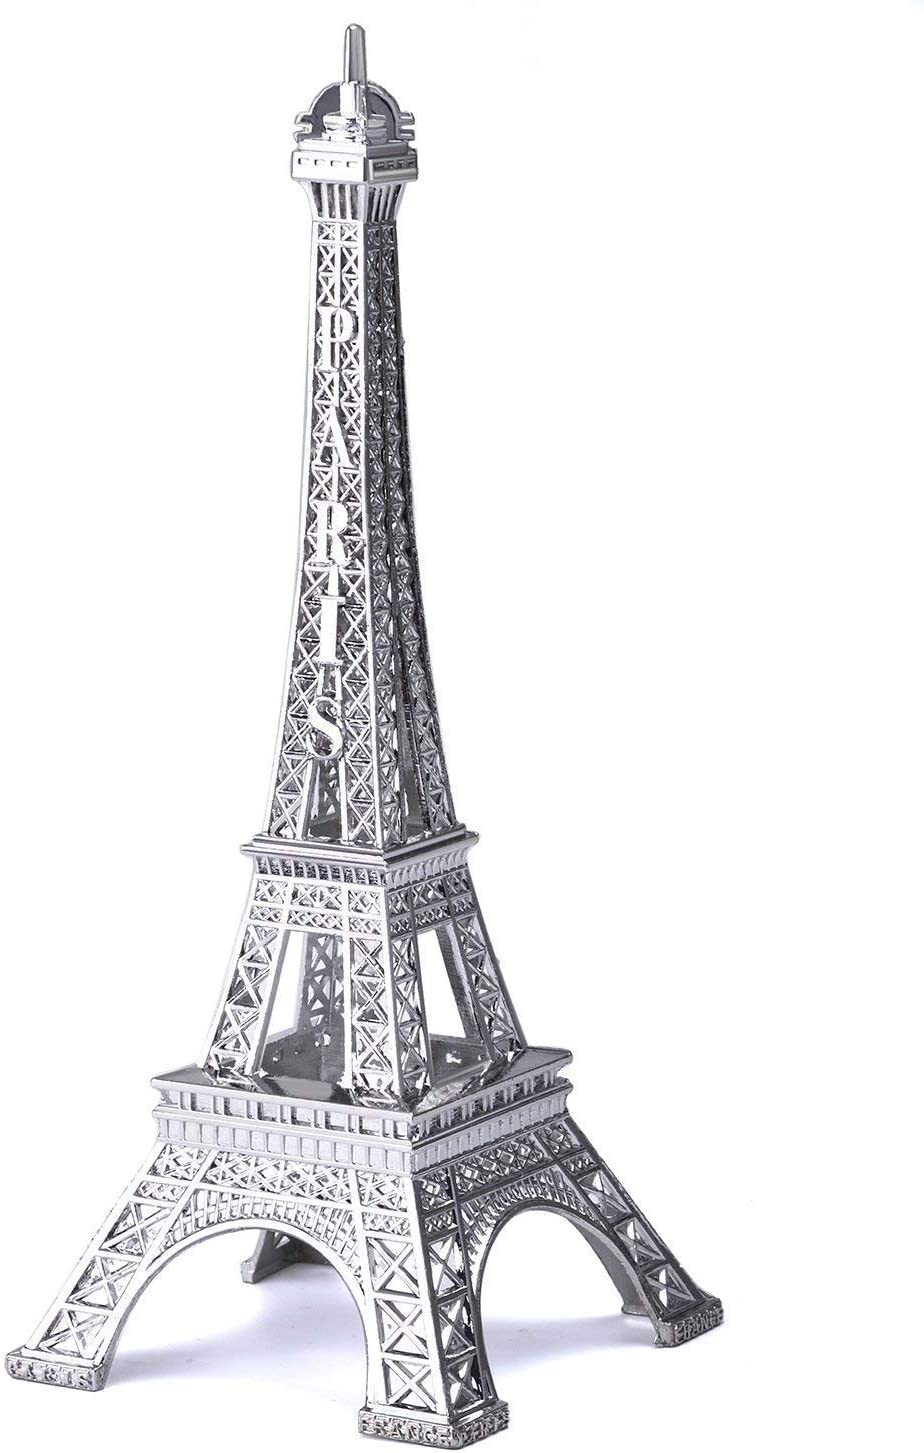 Eiffel Tower Paris France Metal Stand Statue Model for Home Decor or Wedding Theme (Silver)